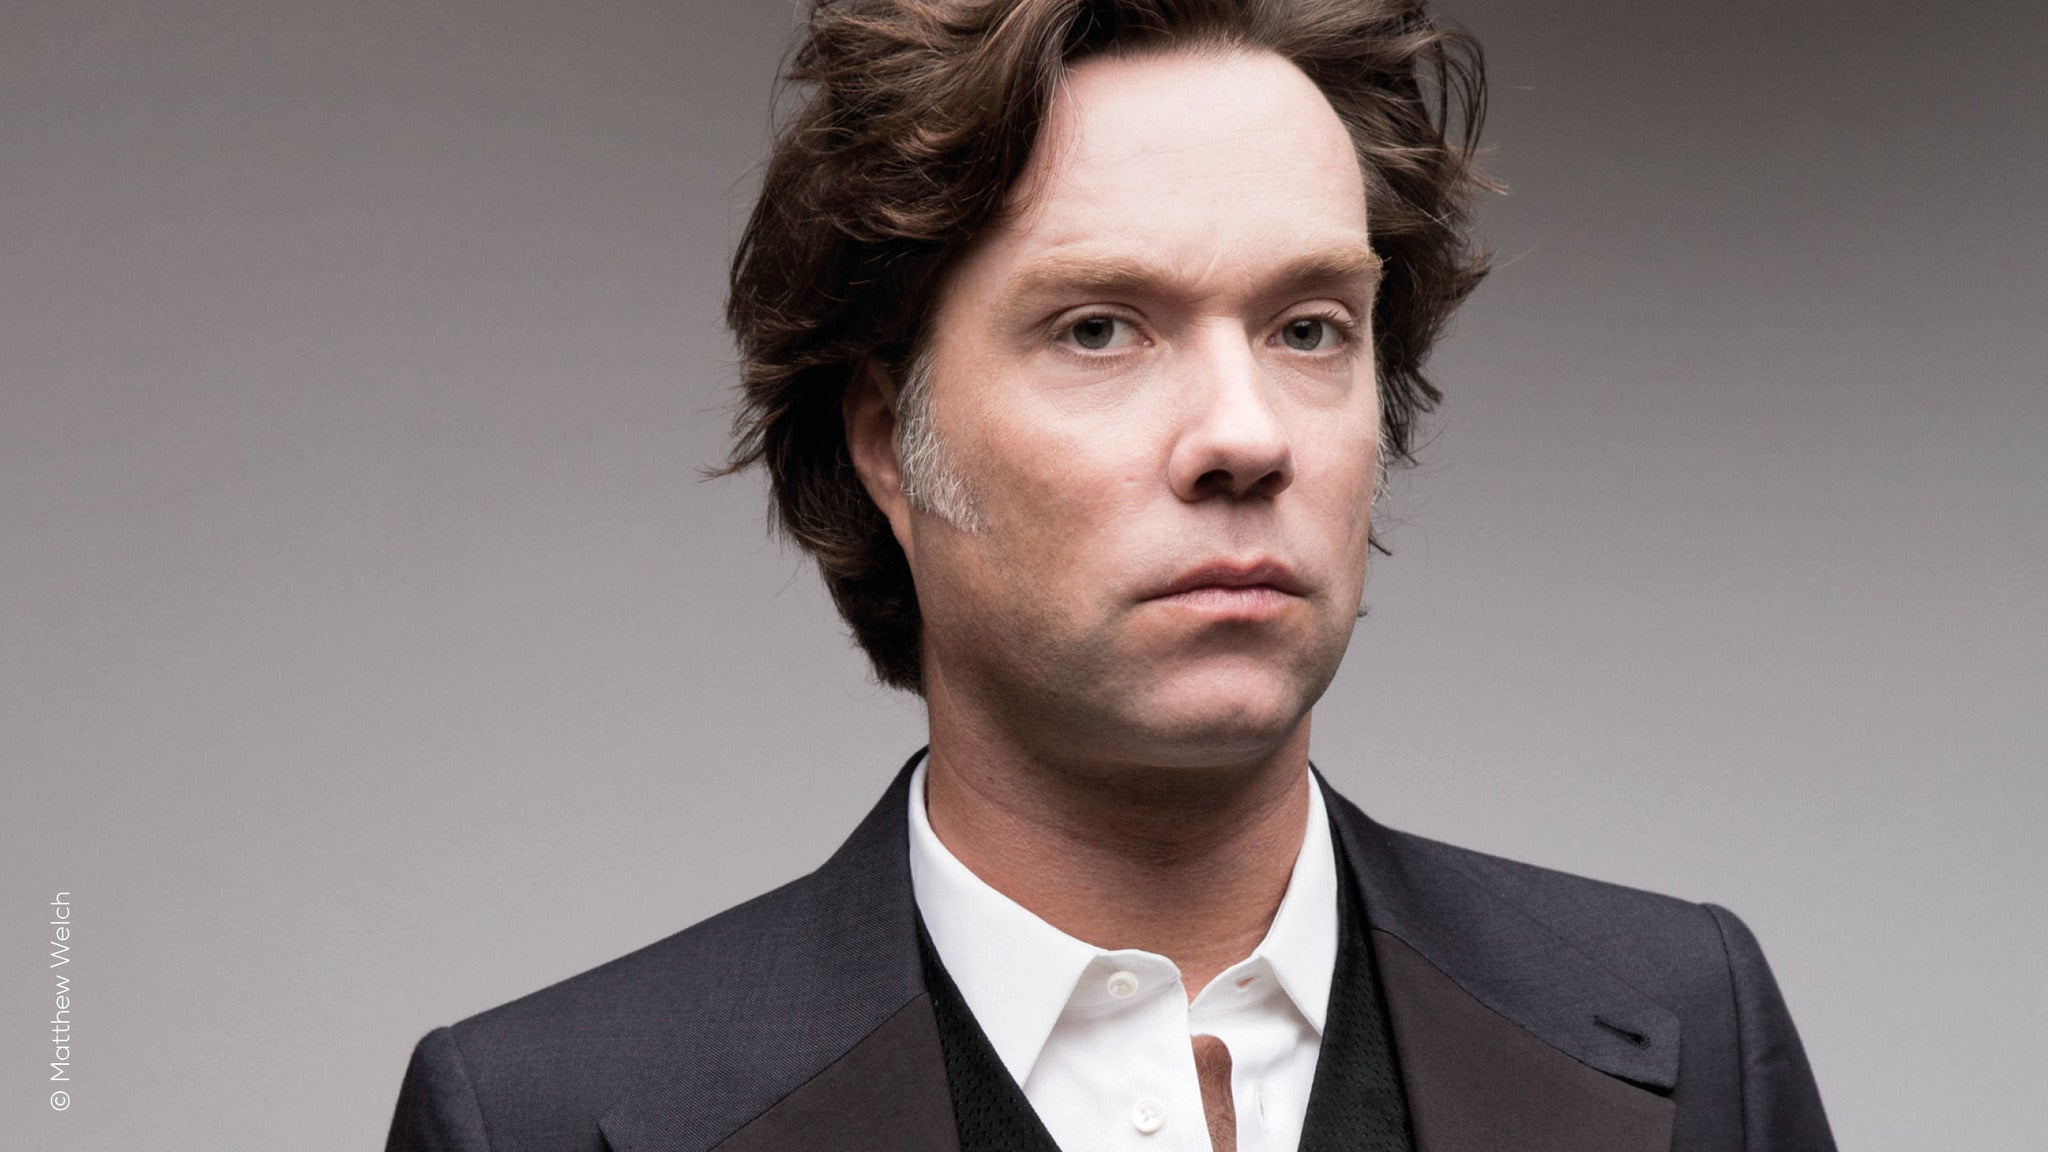 Rufus Wainwright at The Masonic - San Francisco, CA 94108